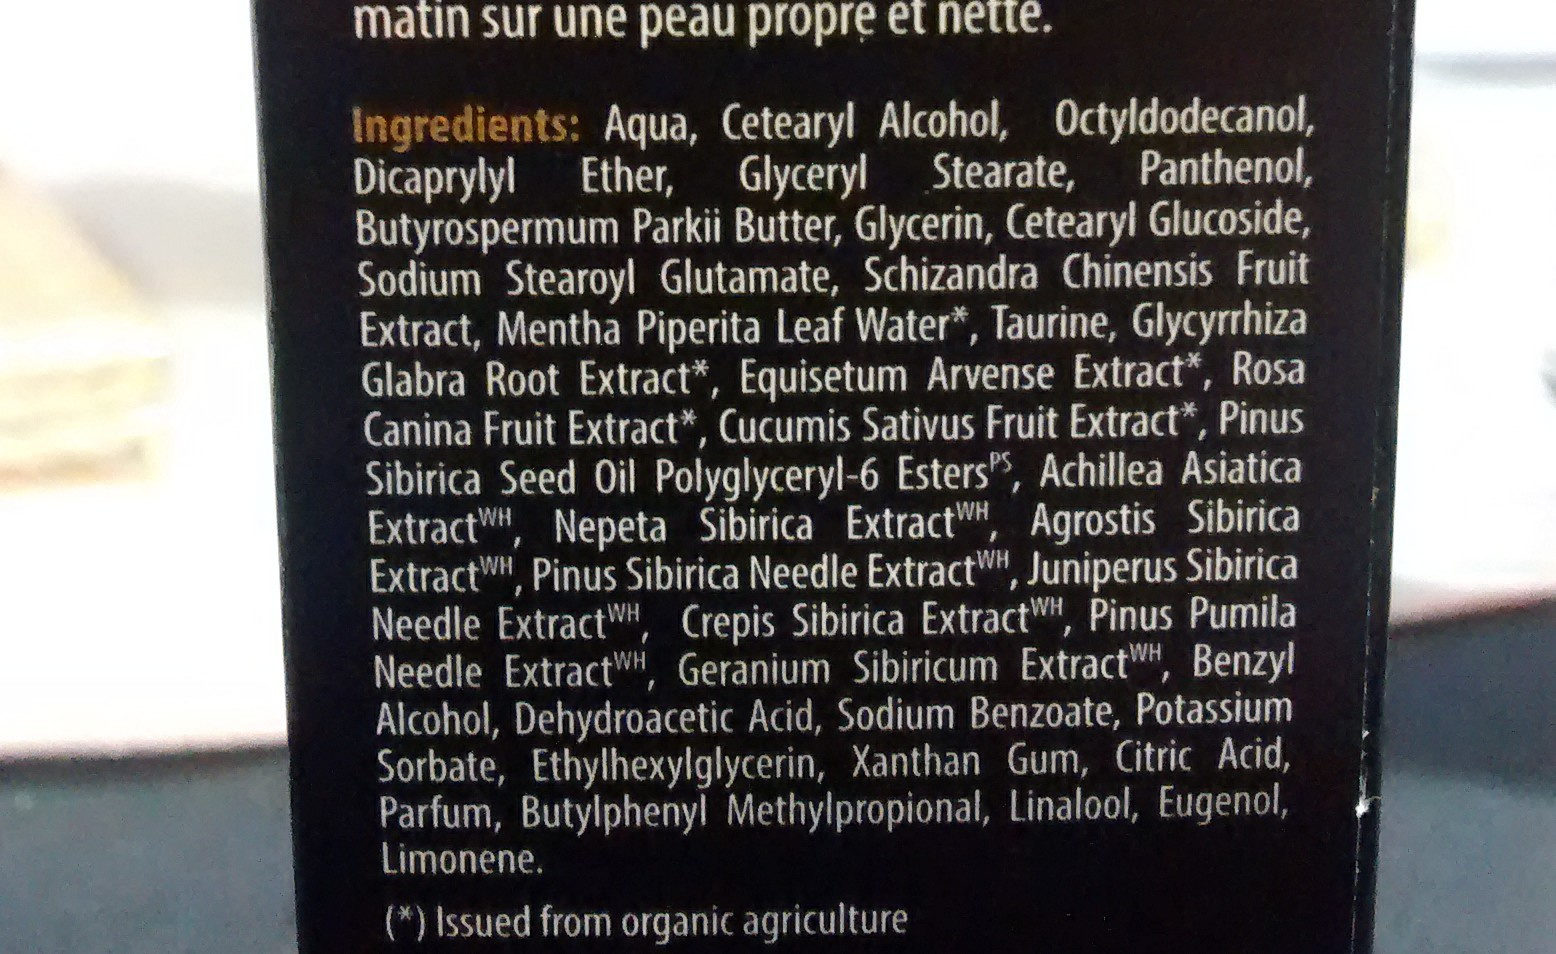 La force du loup - Ingredients